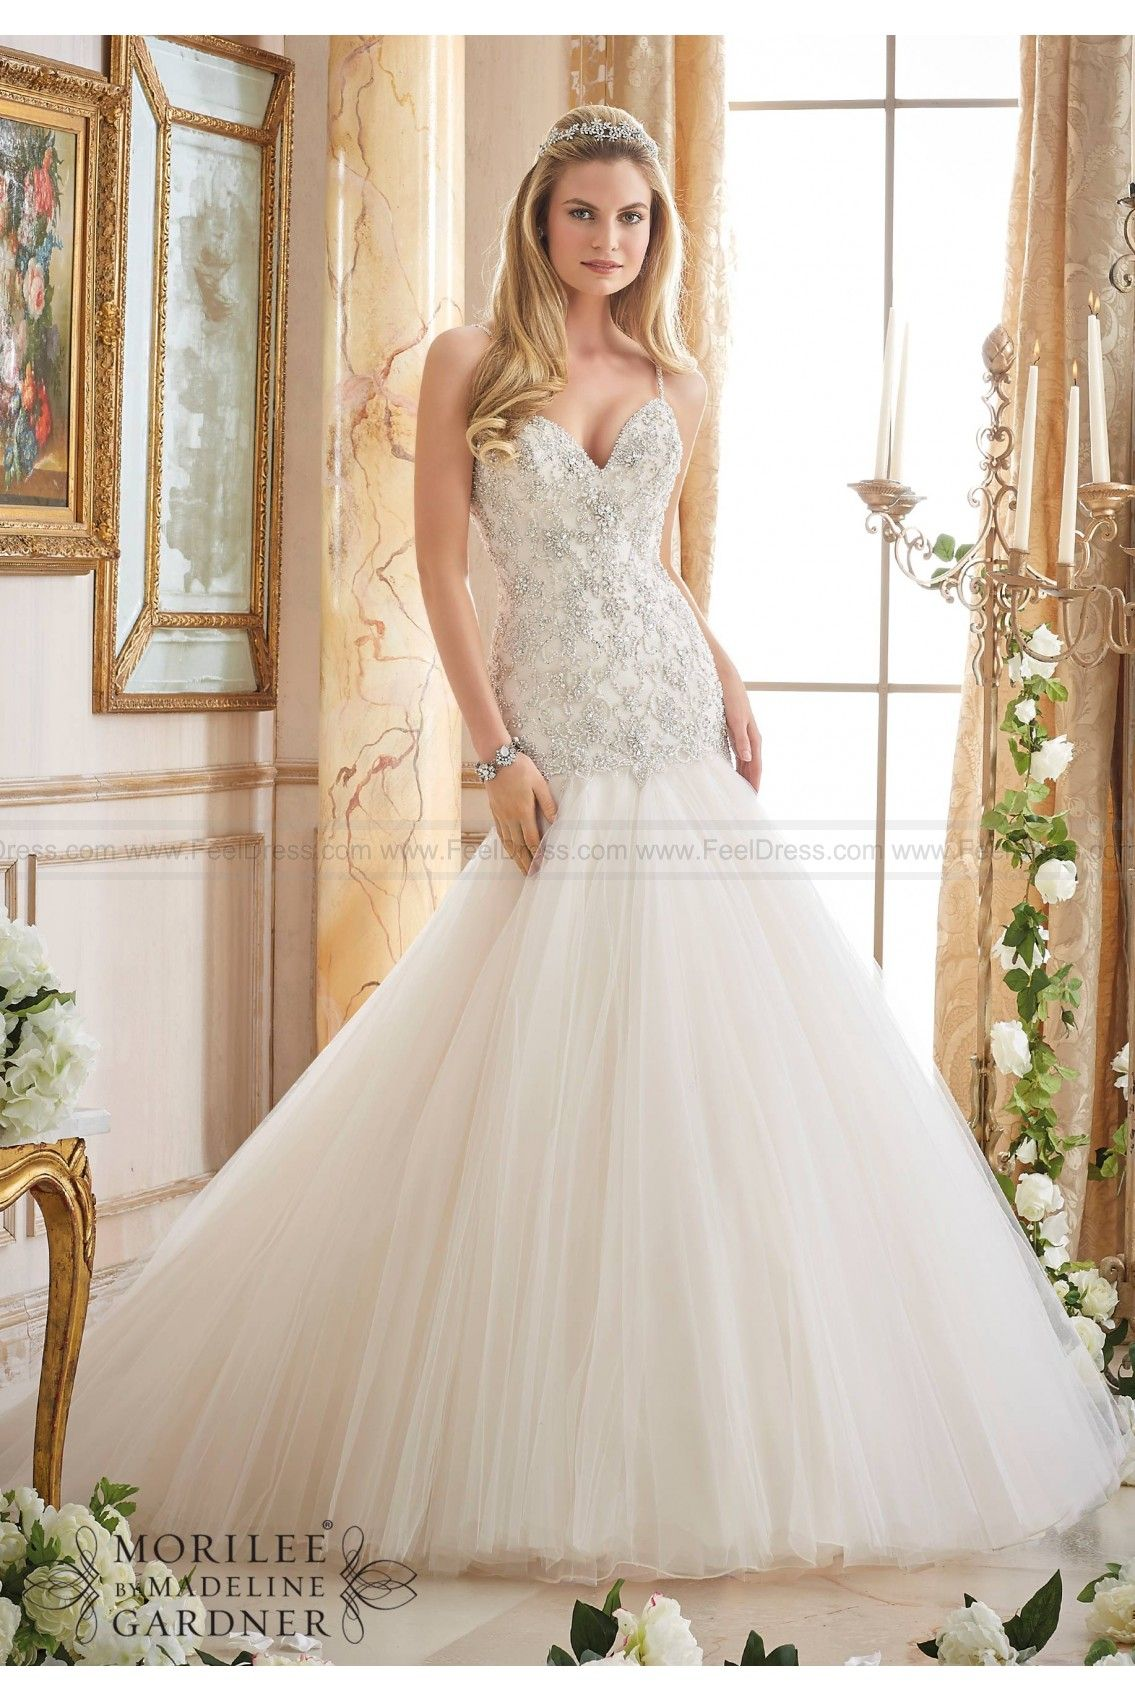 Mori lee wedding dresses style 2874 on sale at reasonable prices mori lee wedding dresses style 2874 on sale at reasonable prices buy cheap mori lee ombrellifo Images